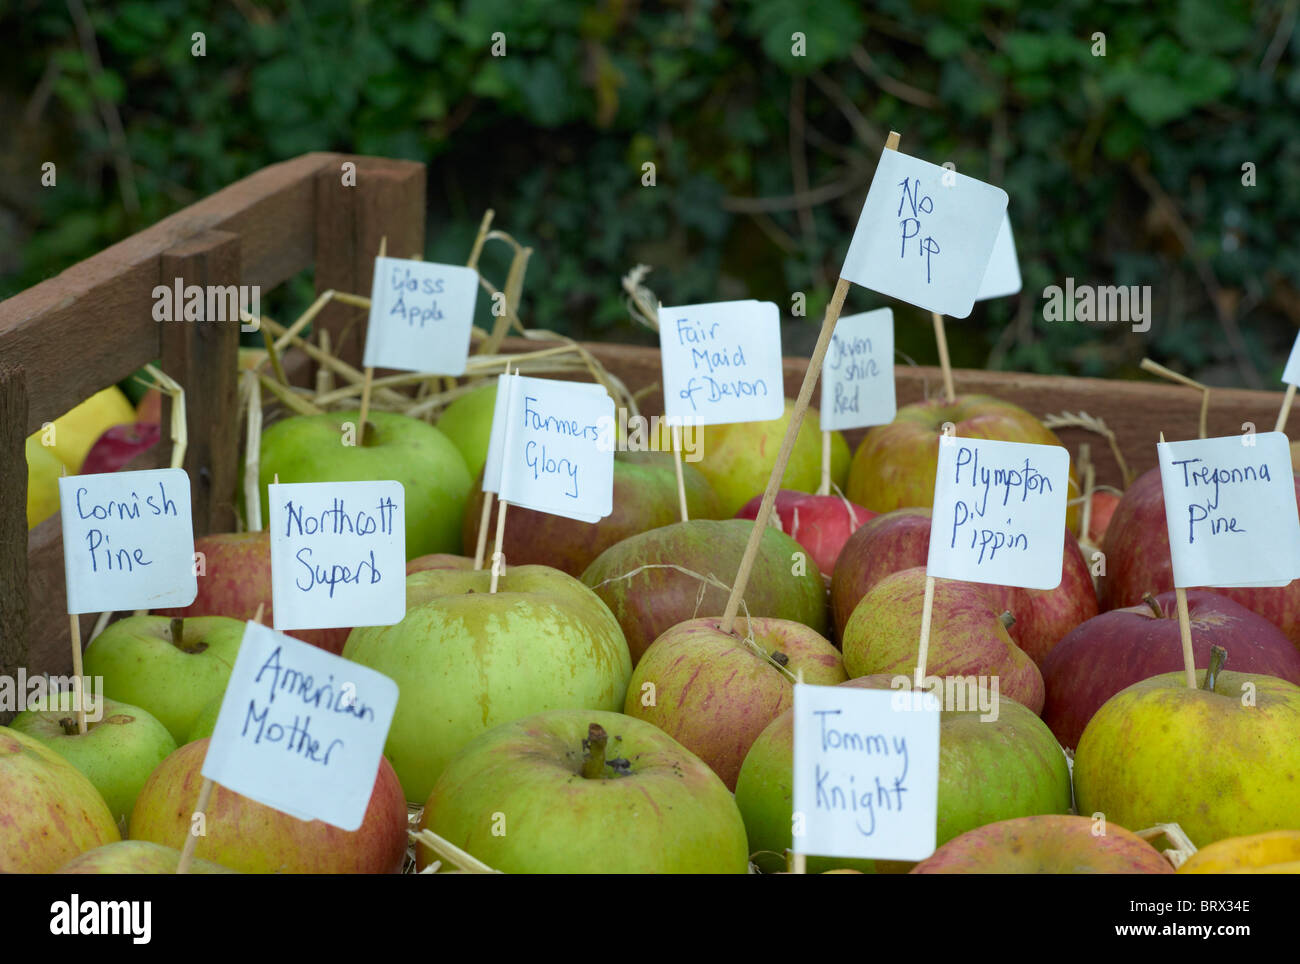 Labeled varieties of apples in a box show the diversity of apples grown in the UK - Stock Image